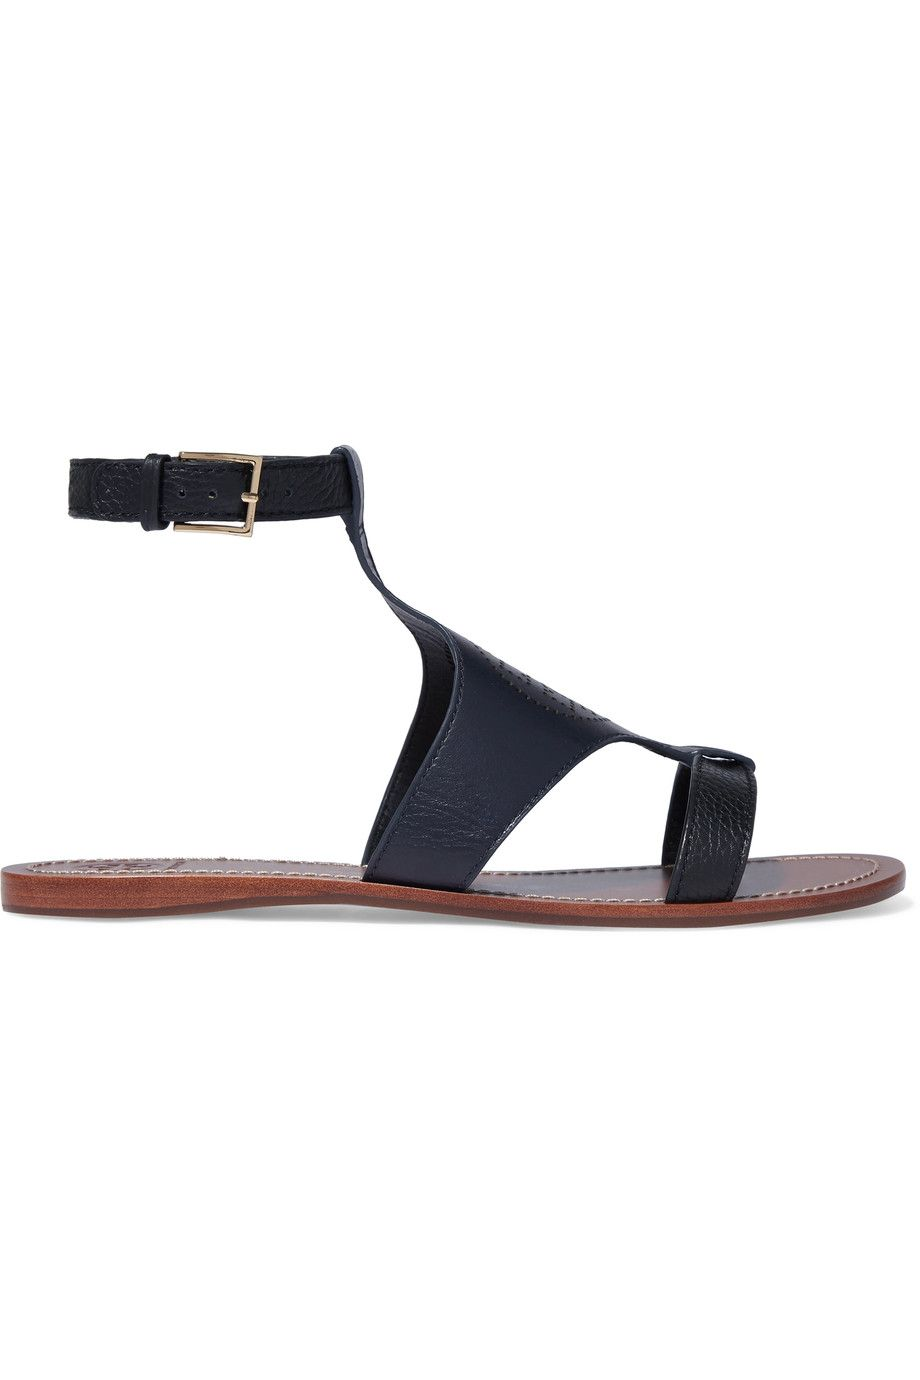 0c5b0805e85d Leather · Tory Burch Perforated leather sandals